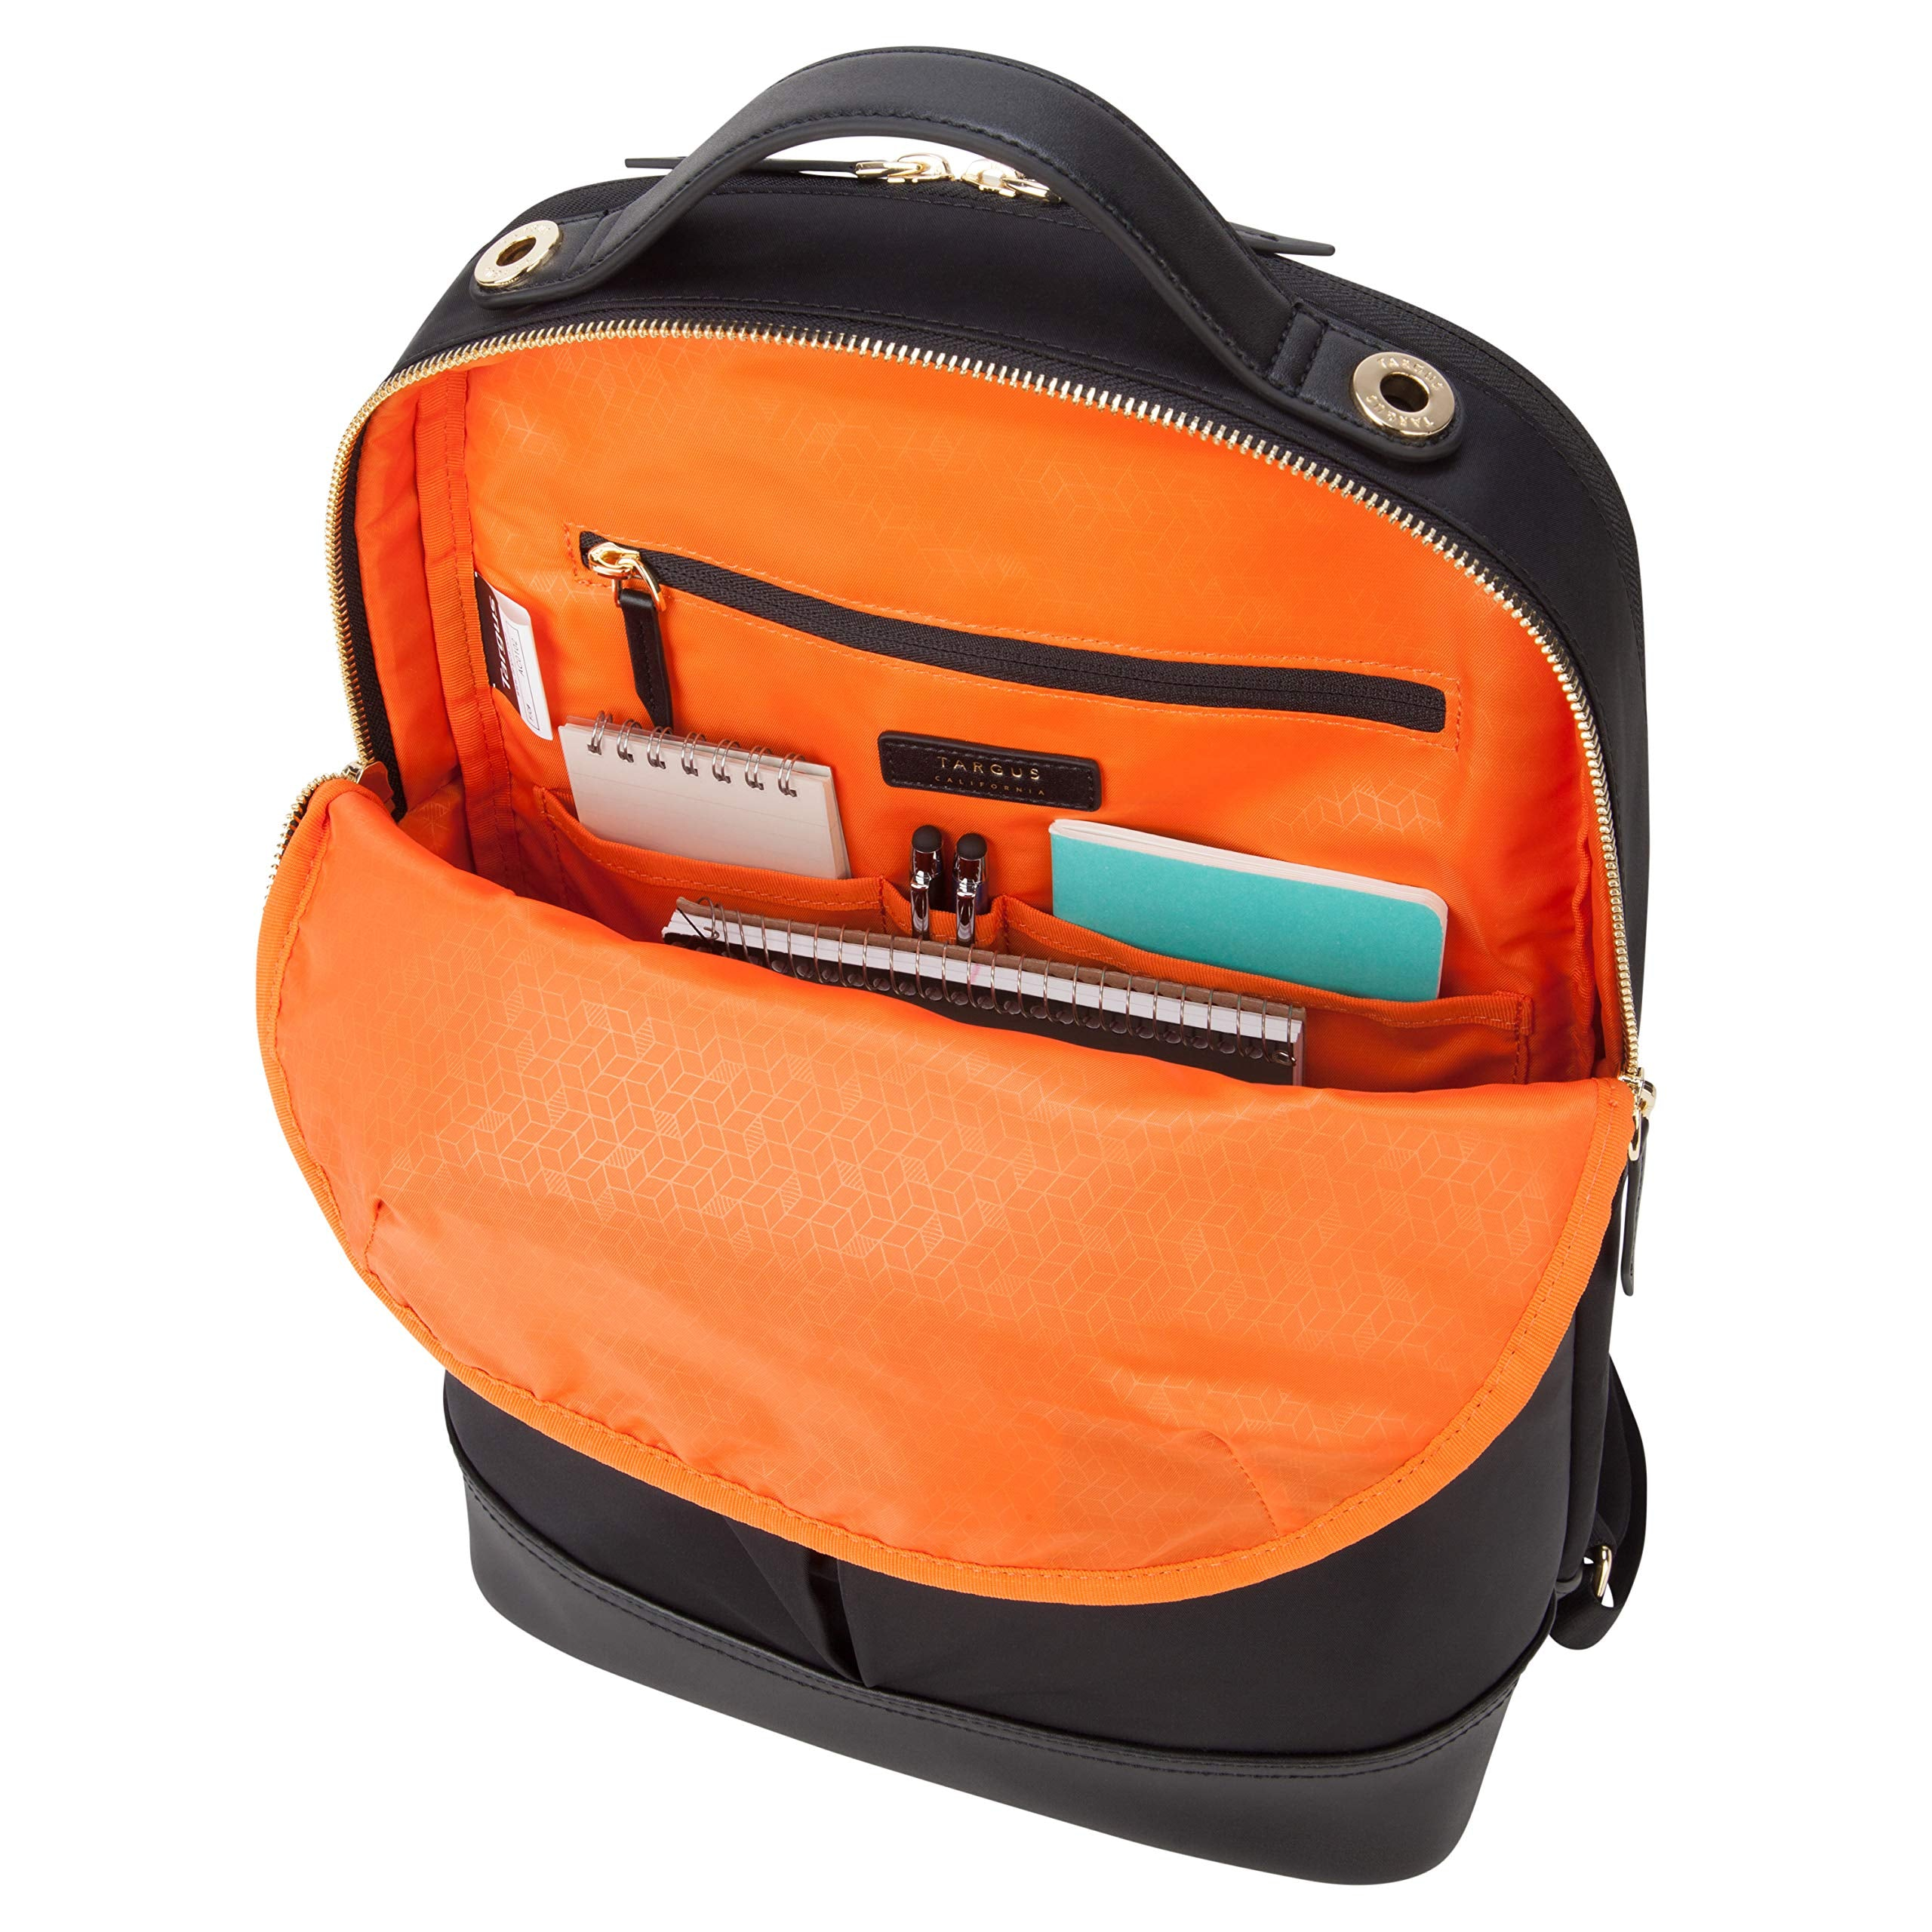 Zippered pockets in Targus backpack for laptop